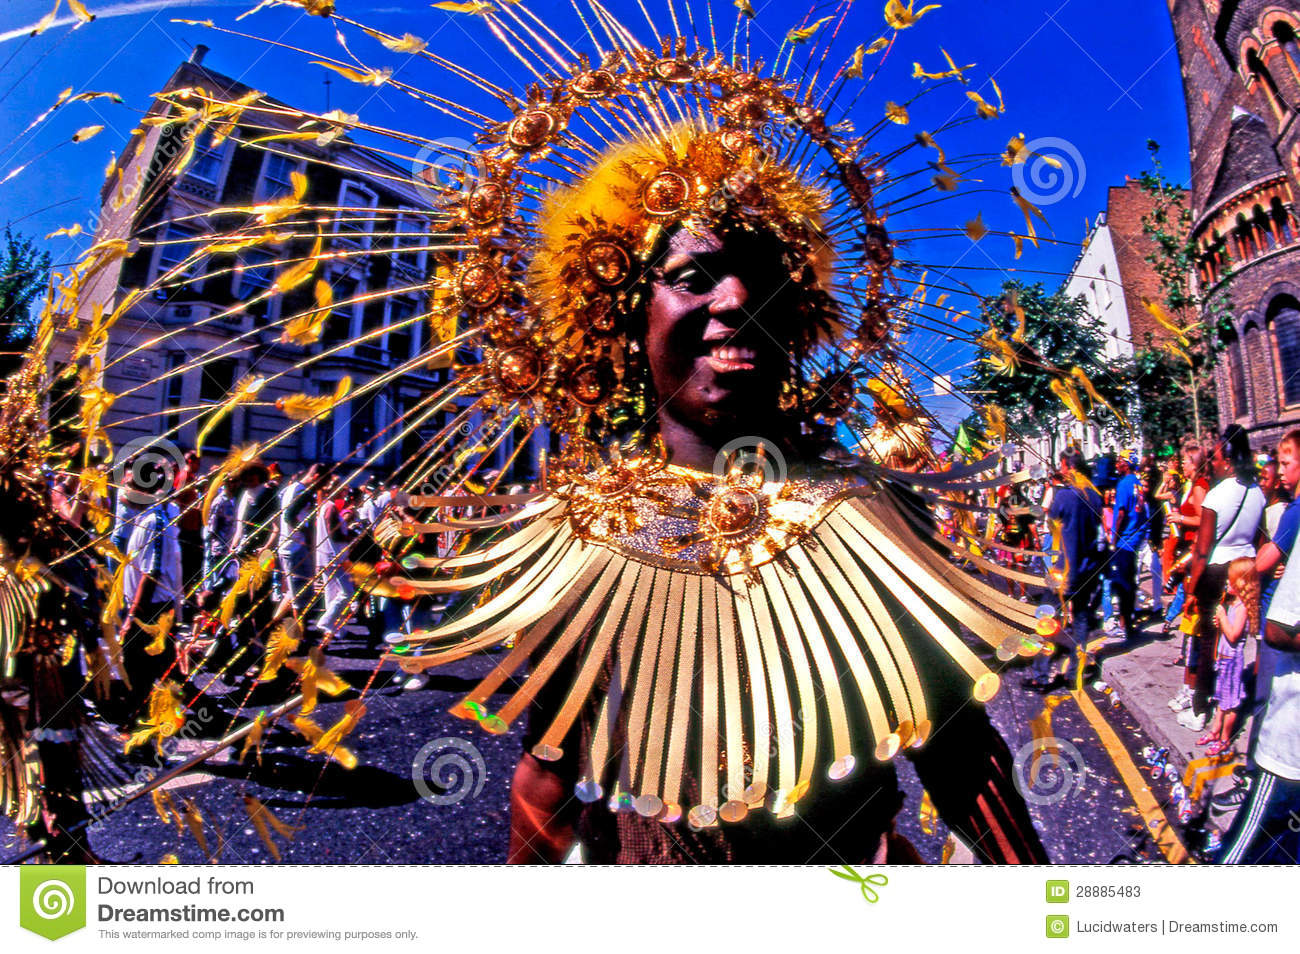 LONDON - AUG 29: Performer takes part in the Notting Hill Carnival on ...